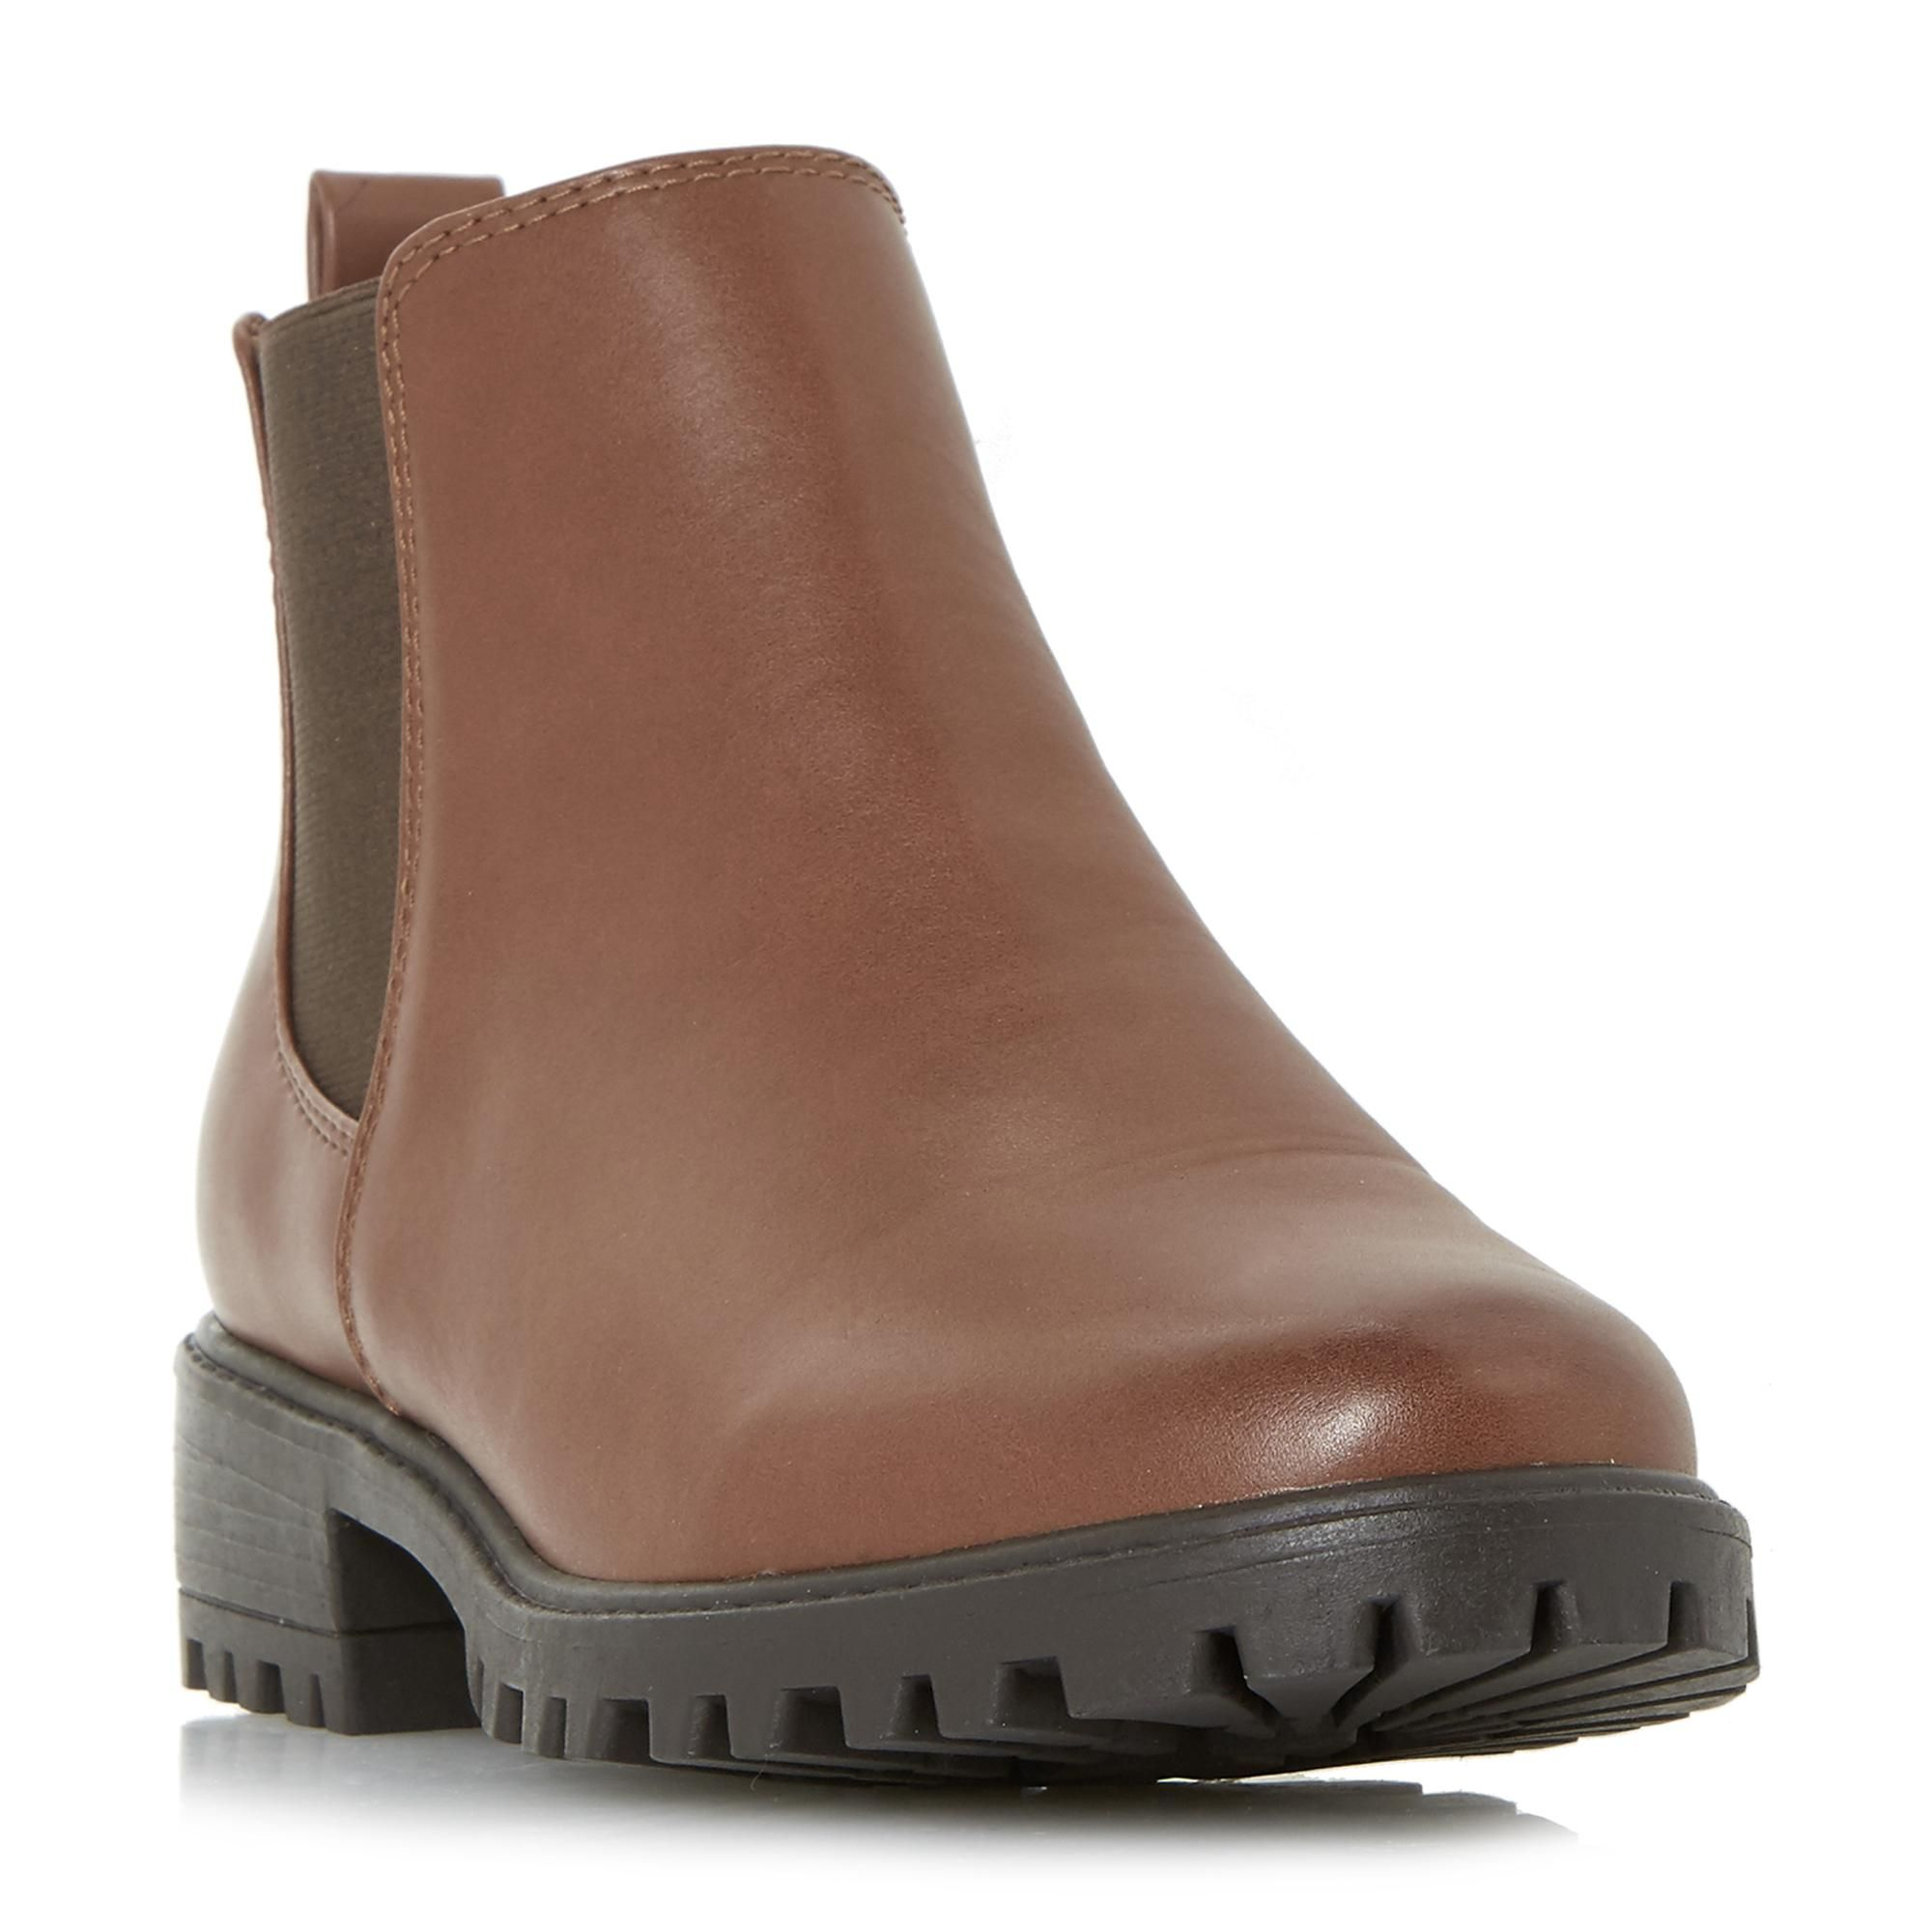 PORTIAA - Cleated Sole Chelsea Ankle Boot